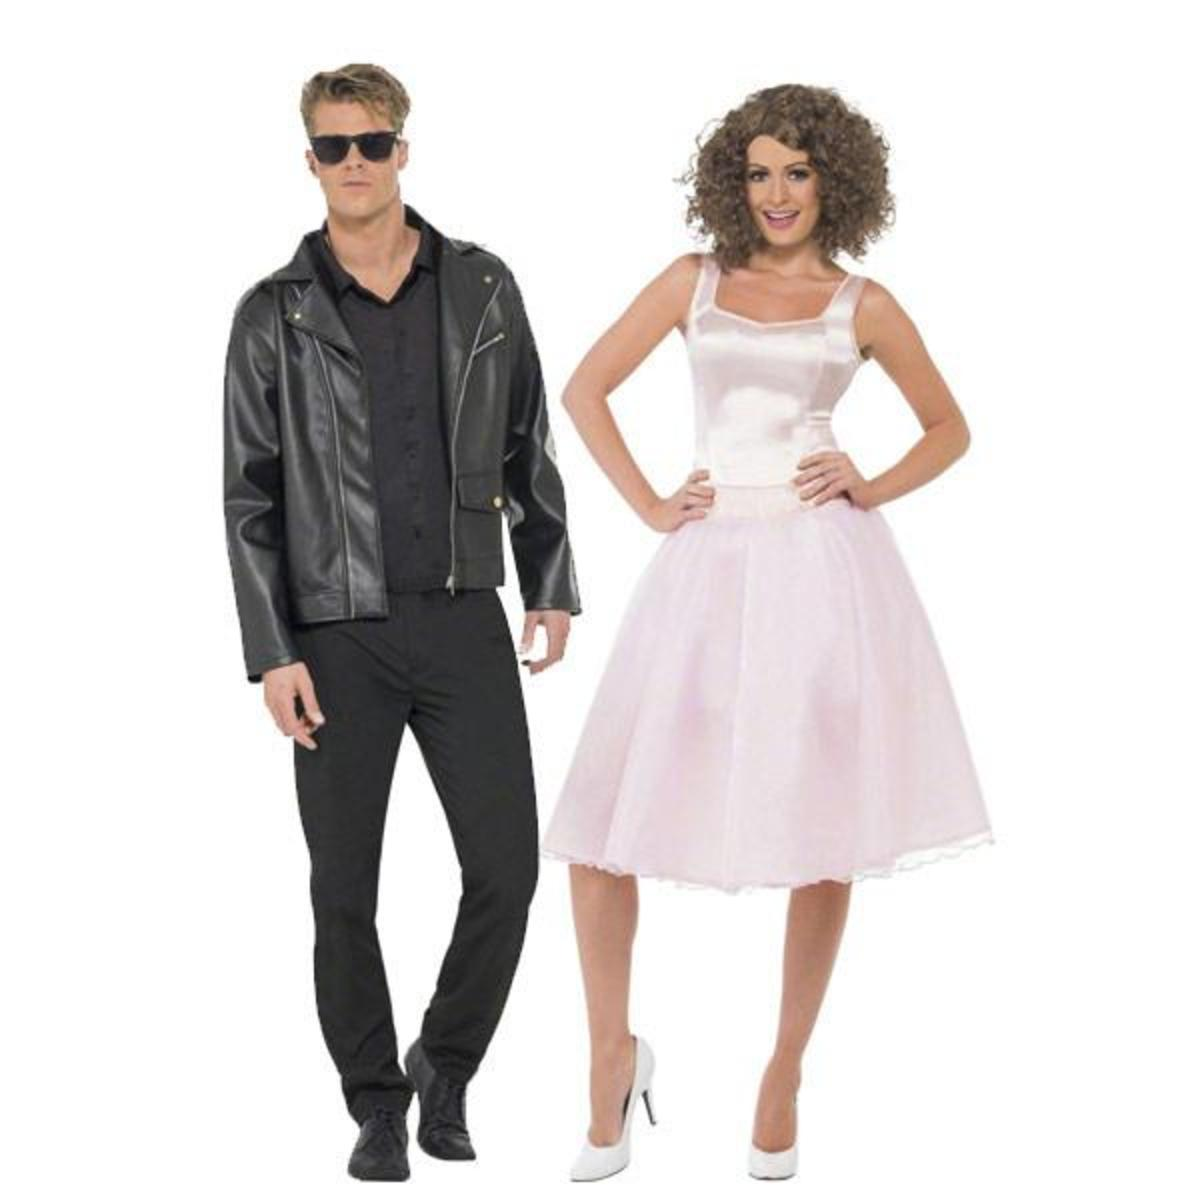 Dirty Dancing was a popular 1987 love story between Baby and Johnny. This is a fun, original, and easy idea for a couple's Halloween costume!